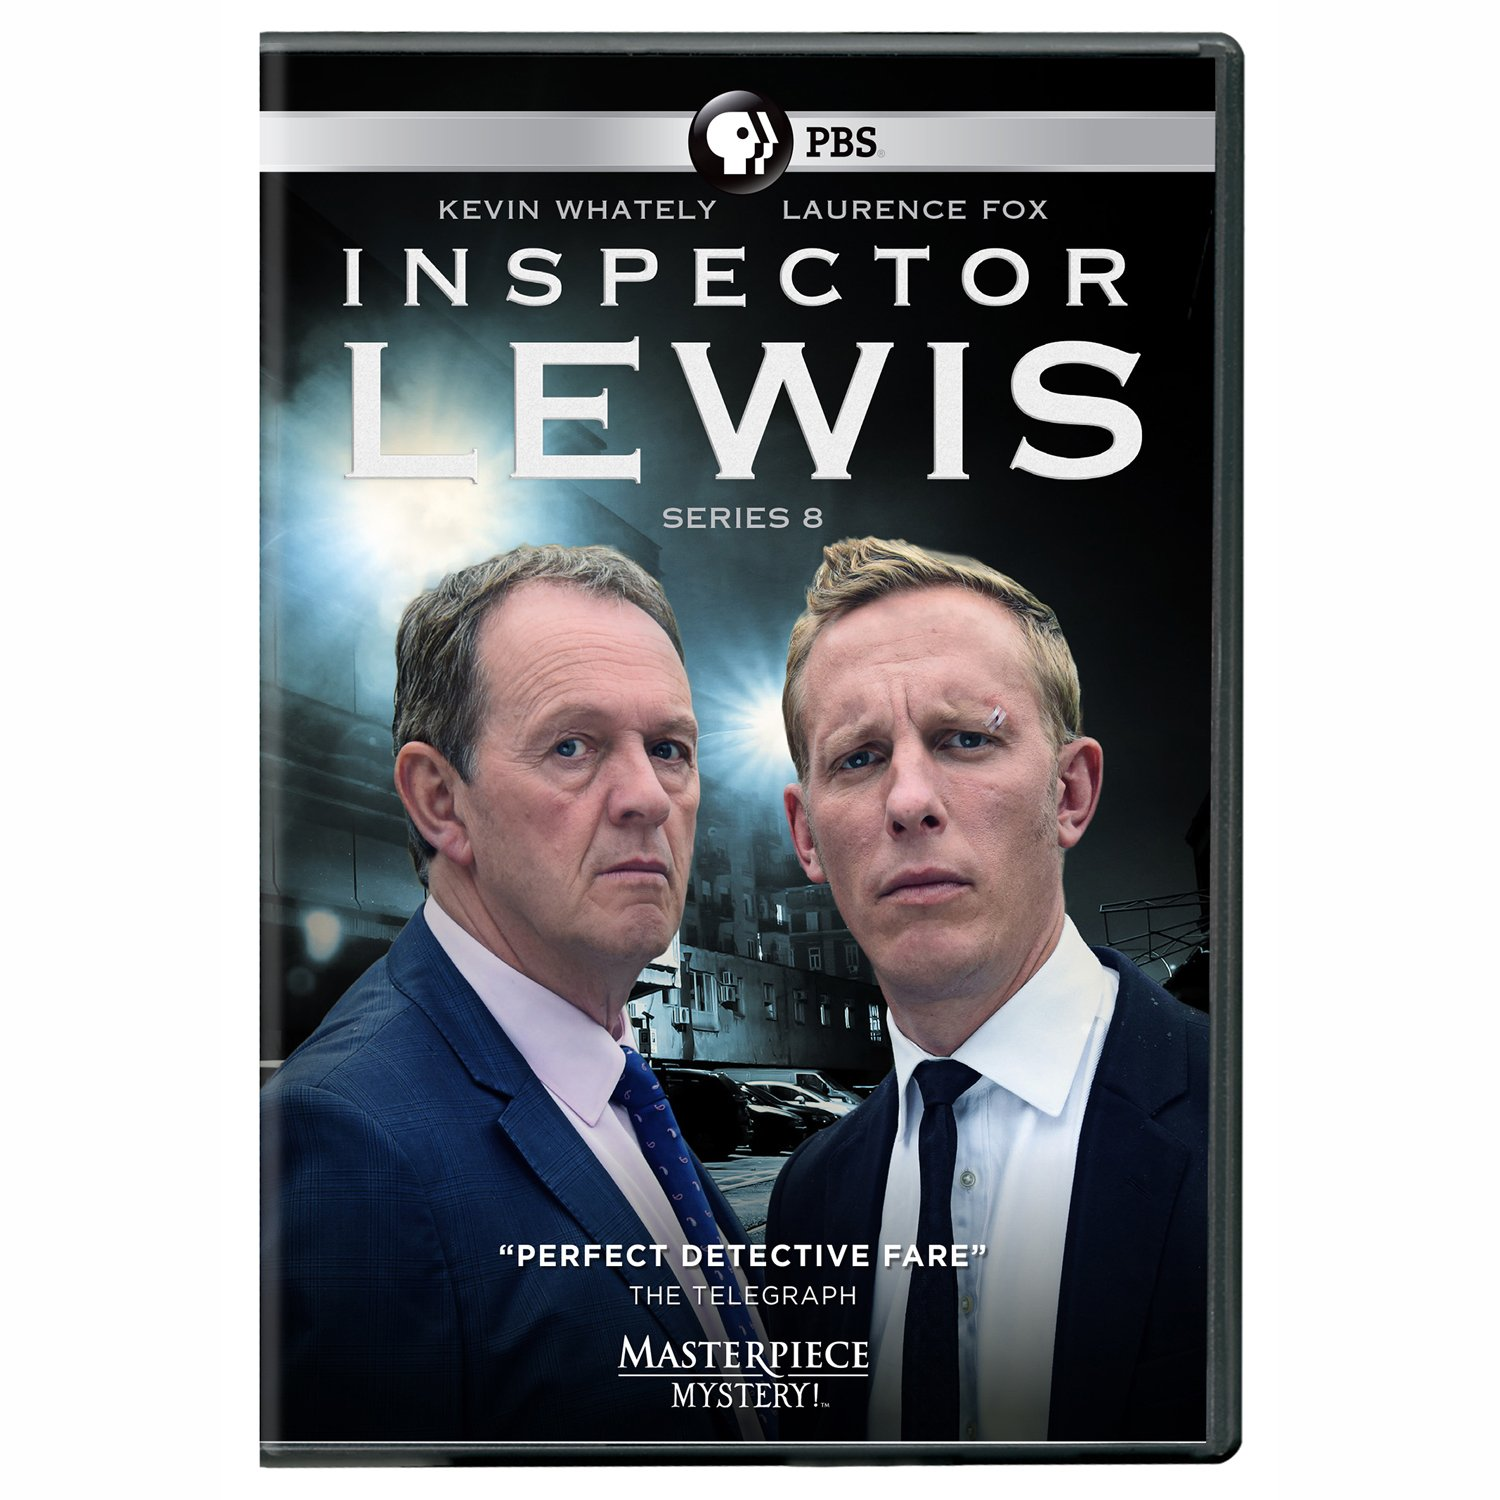 Watch Kevin Whately (born 1951) video